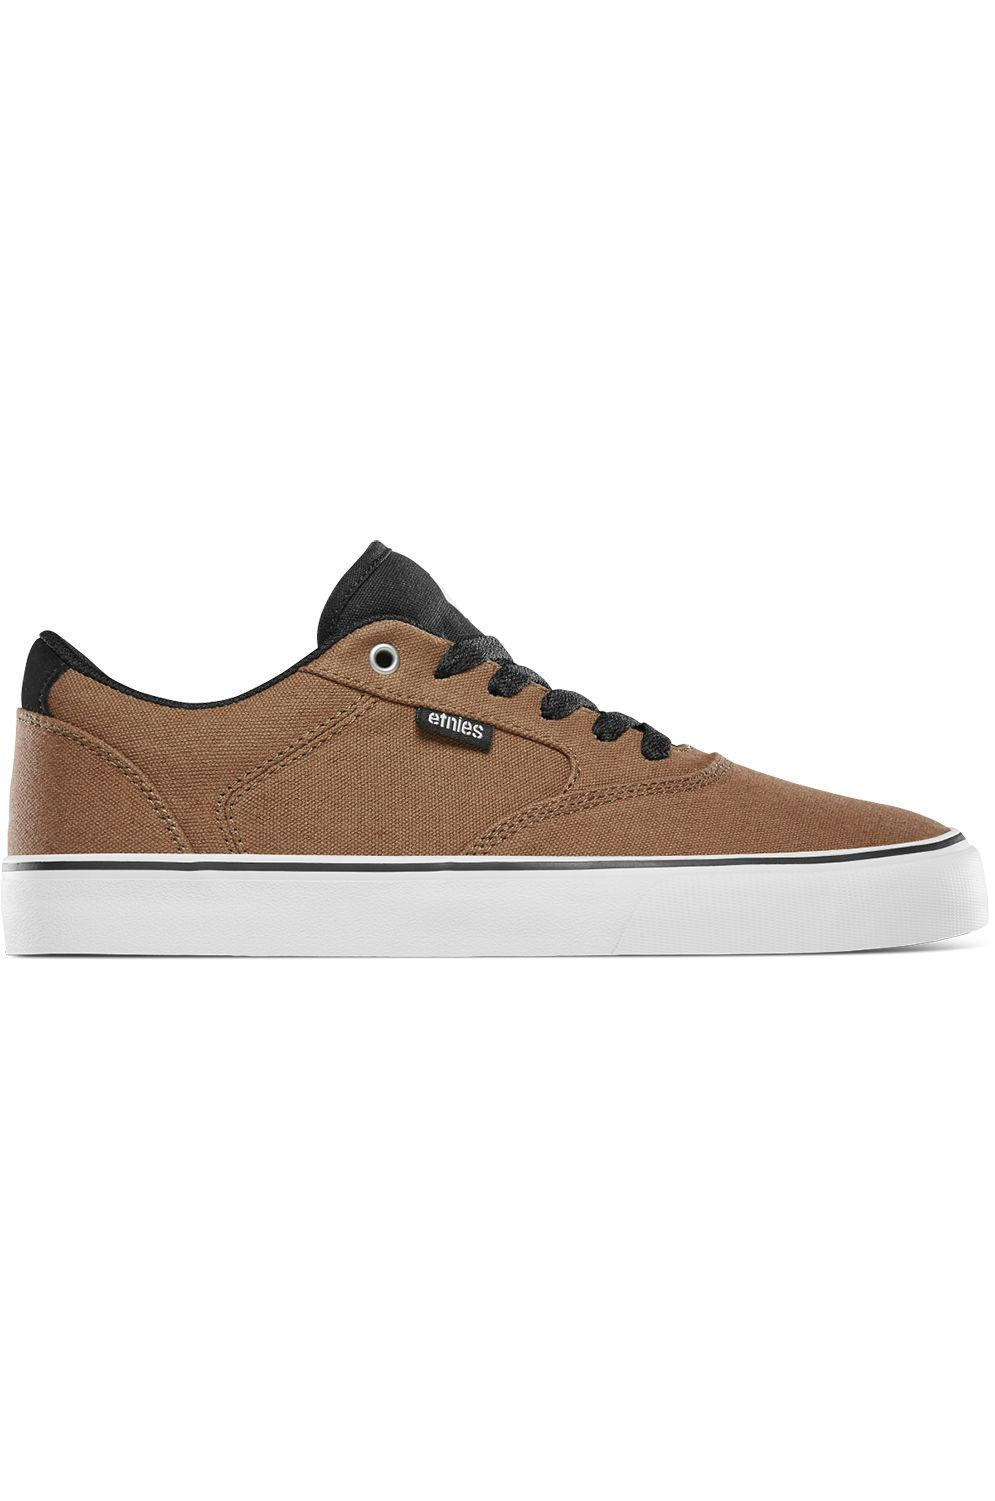 Tenis Etnies BLITZ Brown/Black